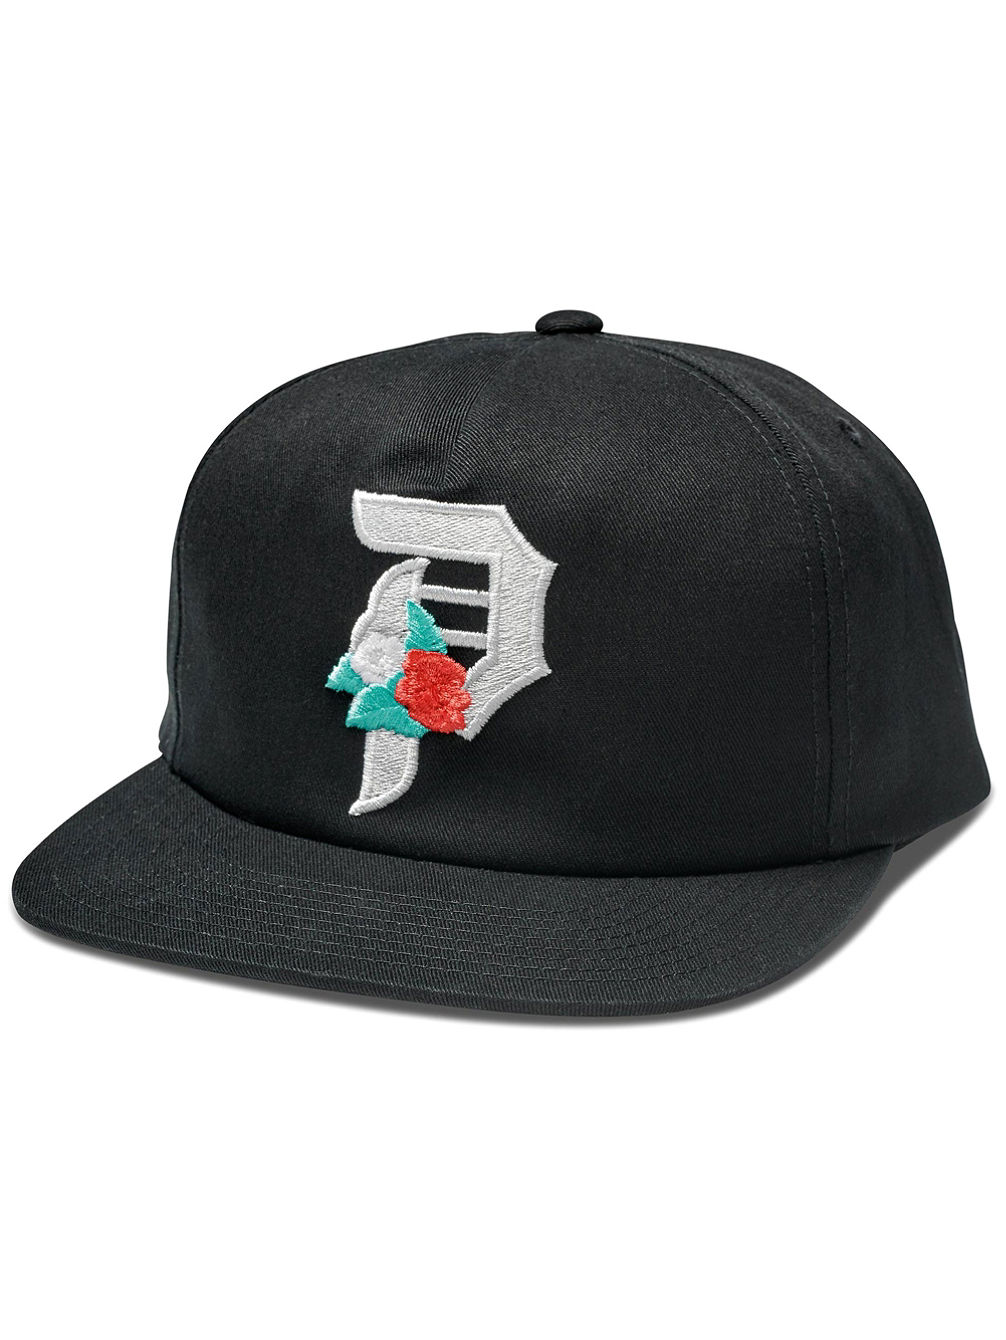 Dos Flores Unstructured Snapback Cap